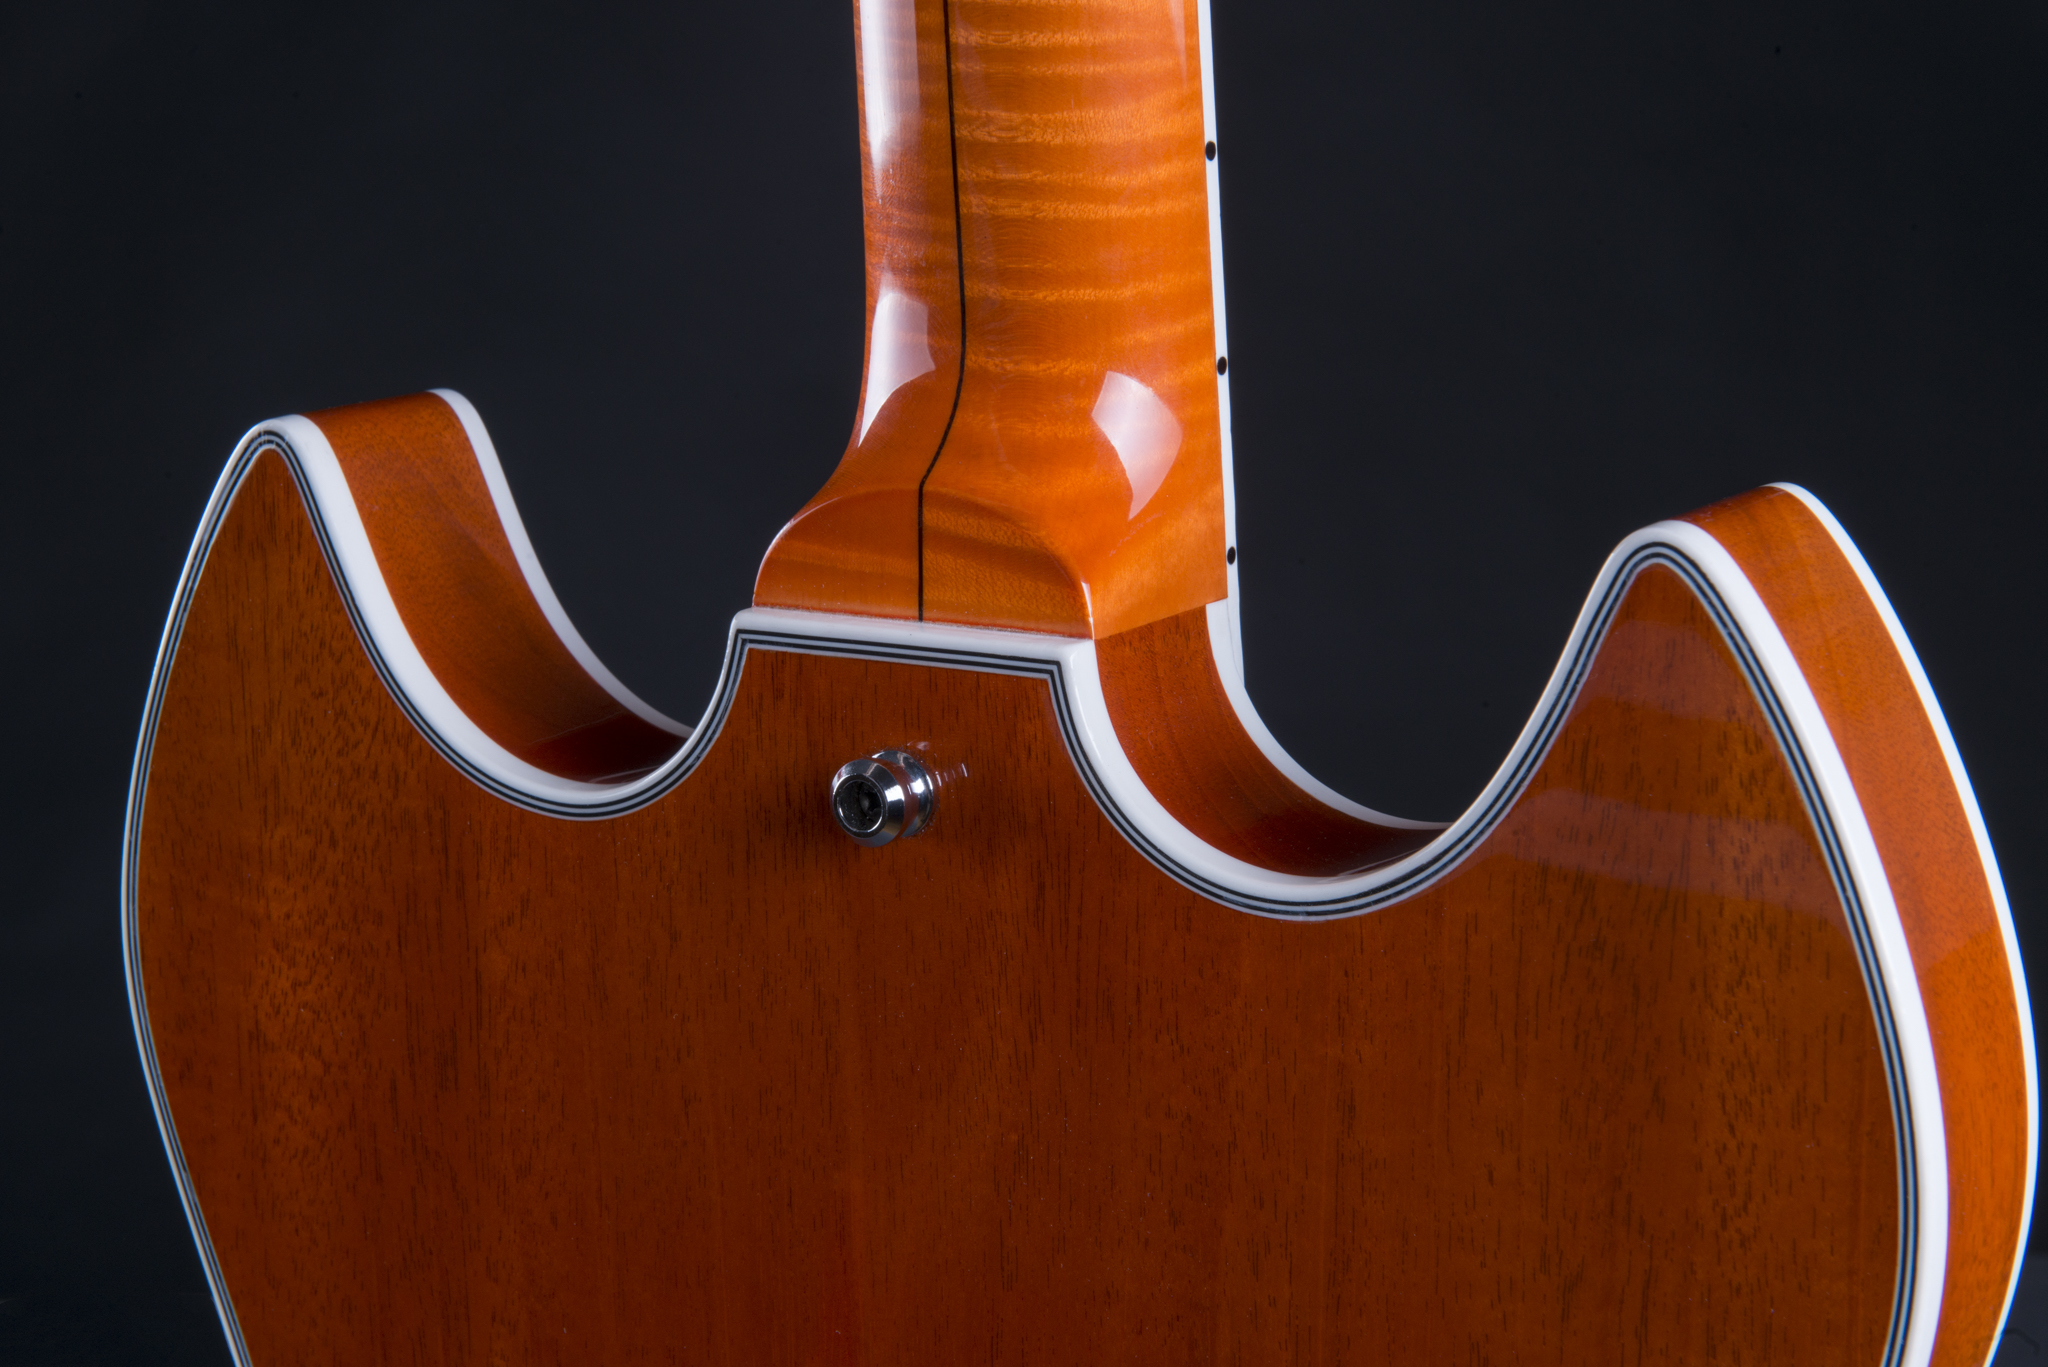 Back of the guitar